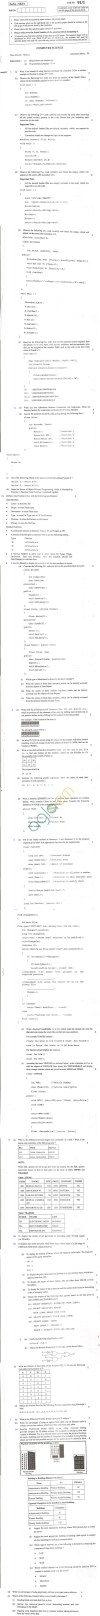 CBSE Board Exam 2013 Class XII Question Paper - Computer Science